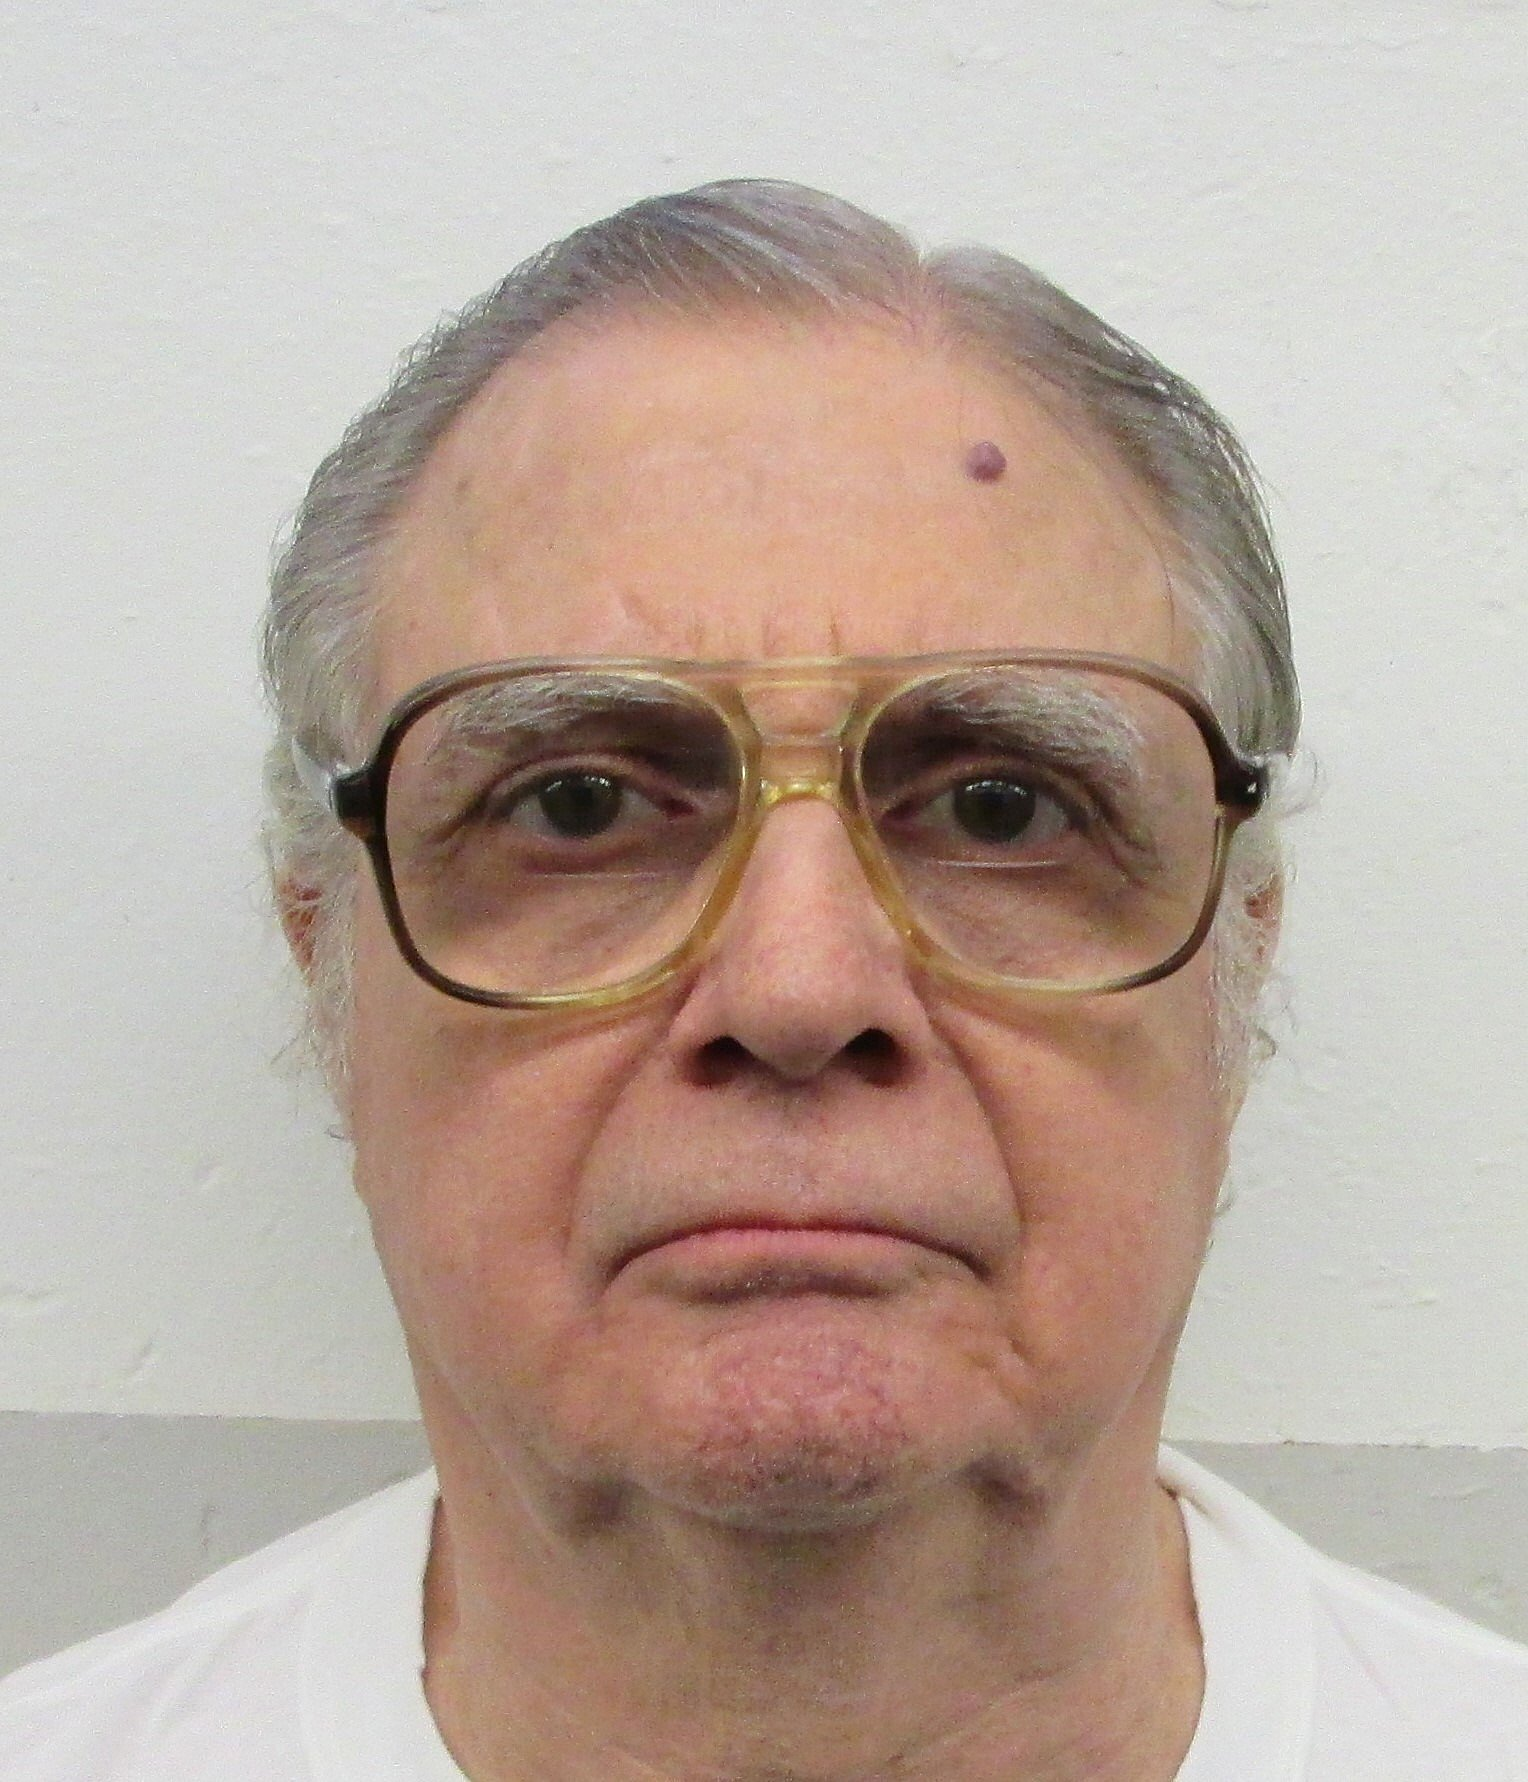 'I won't give up': Death row inmate seeks execution reprieve